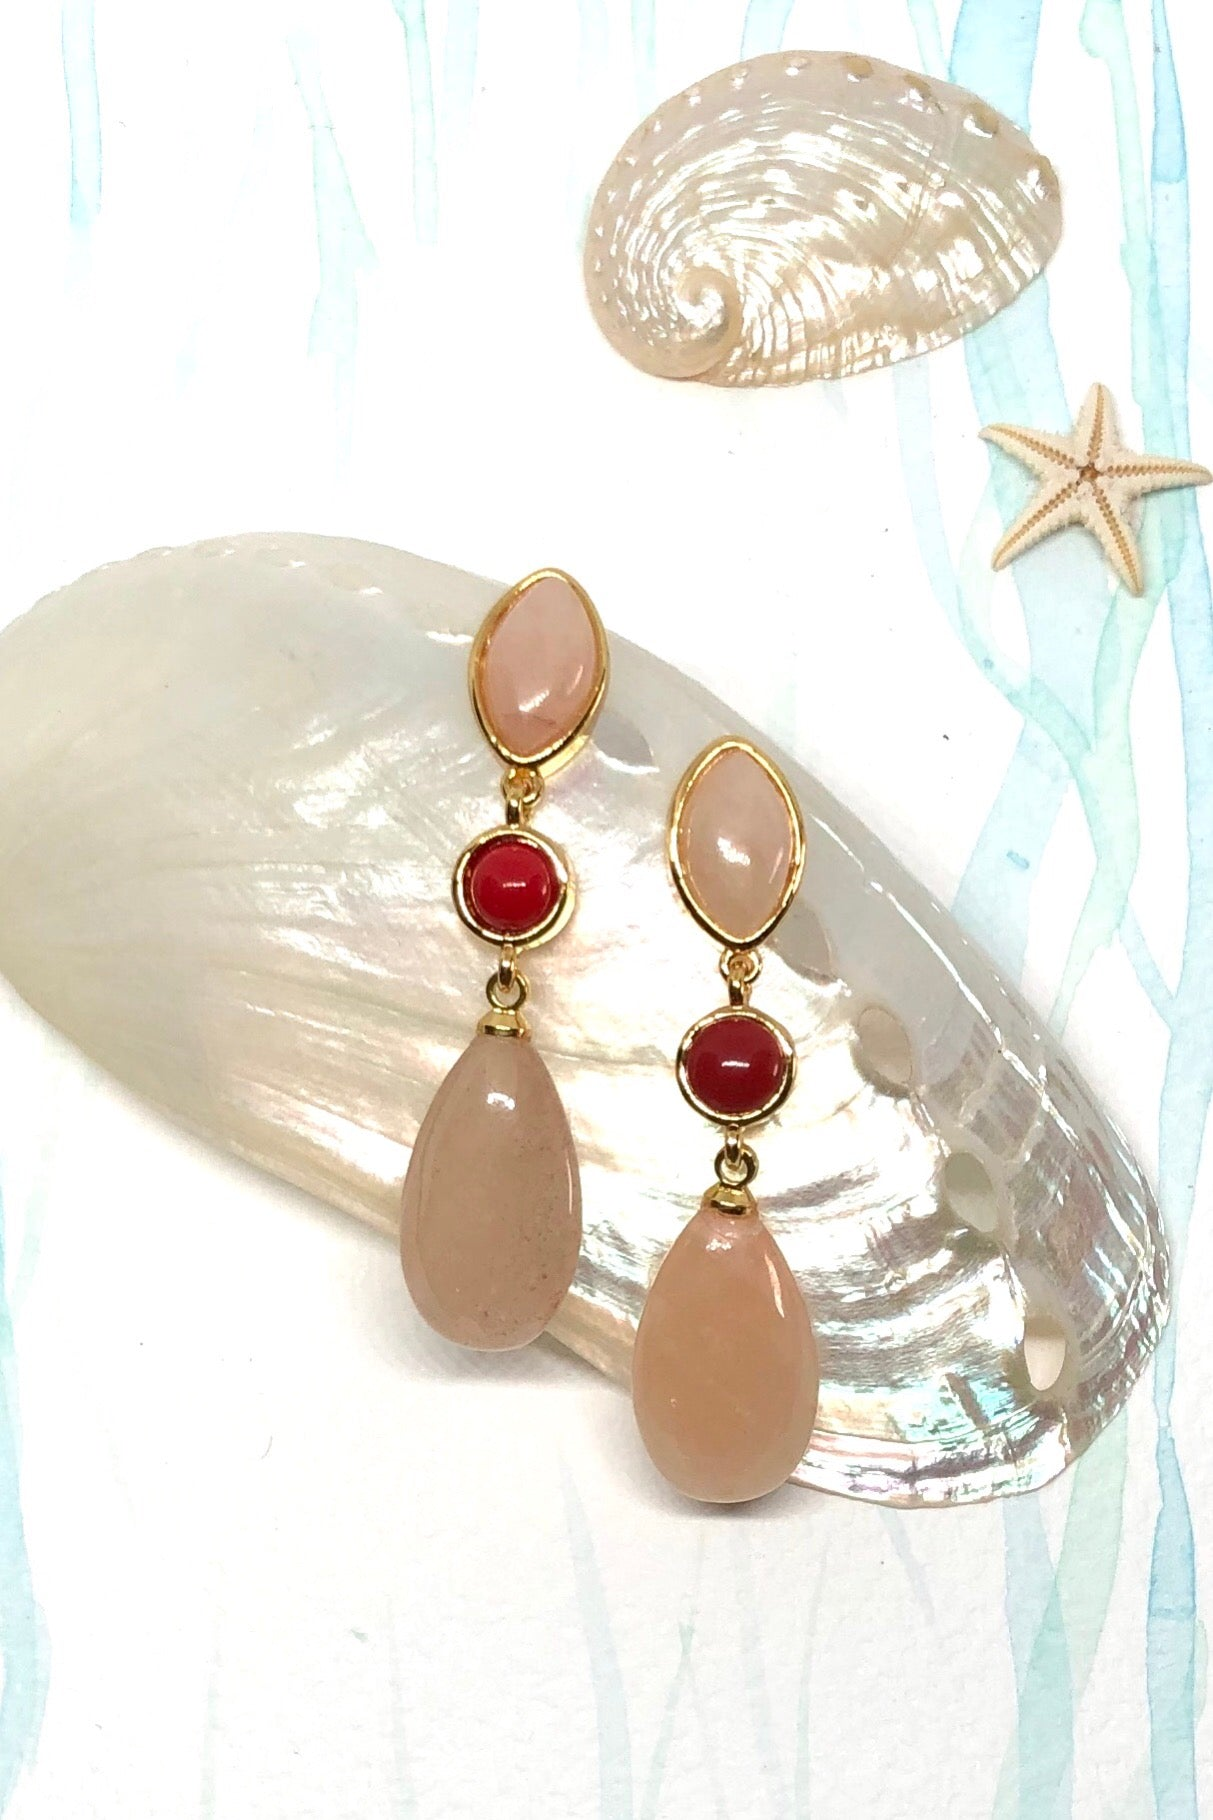 pink Onyx earrings drop style